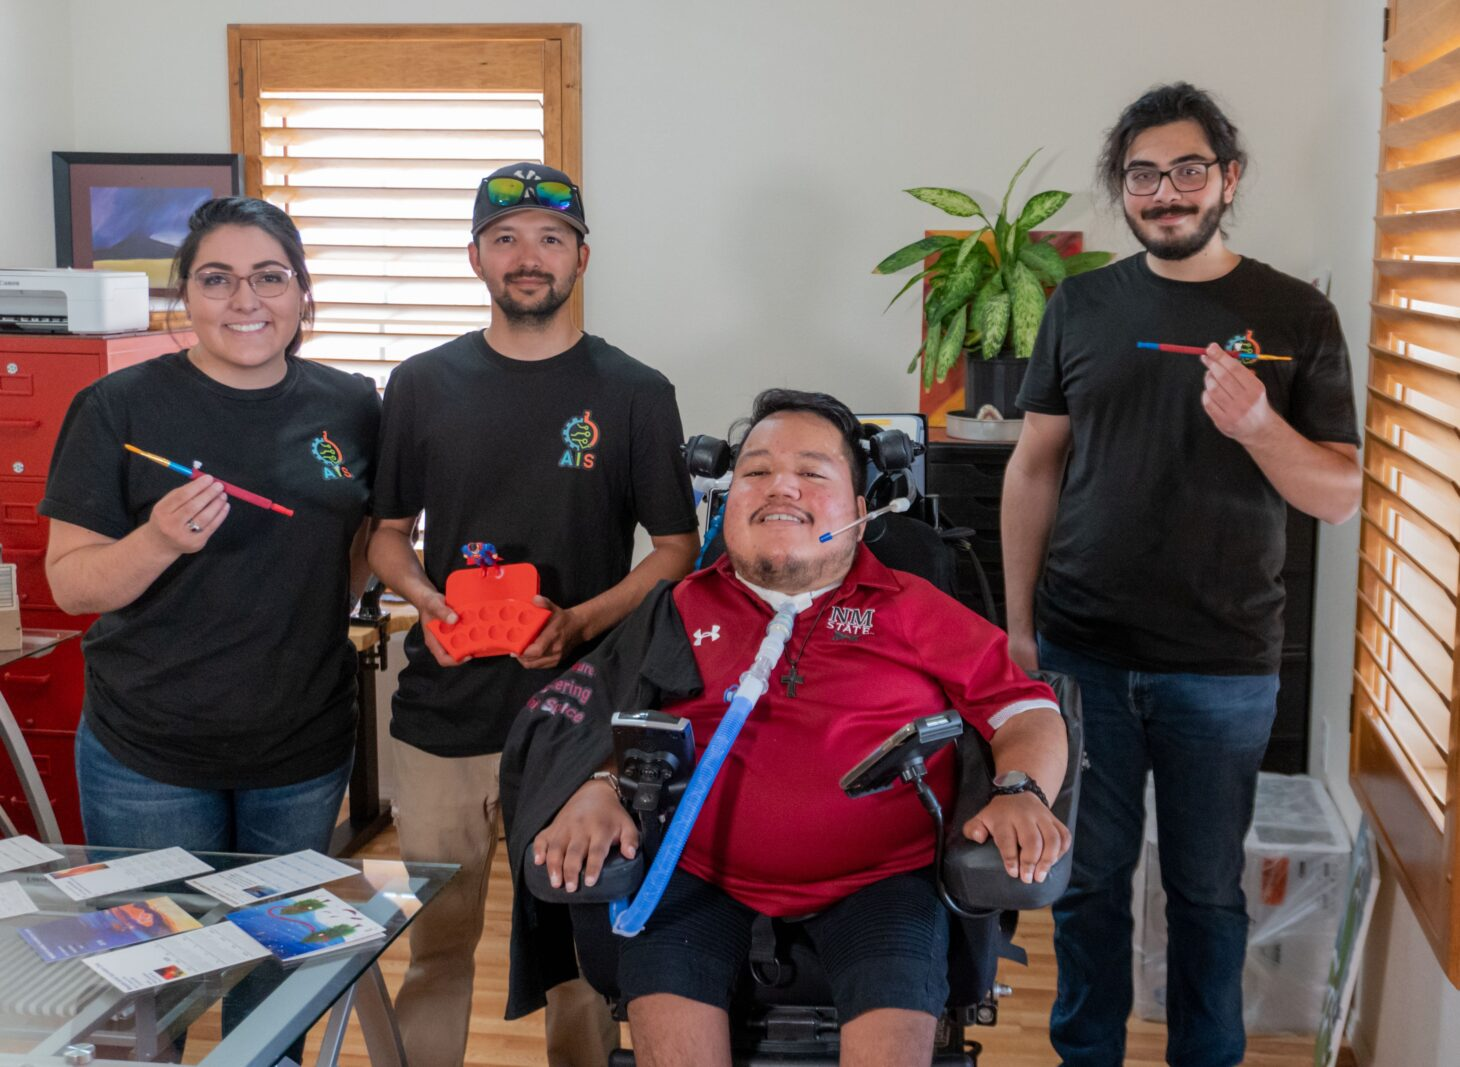 NMSU engineering students (left to right) Amanda Stoyanoff, Joshua Santana and Sami Naser with Sam Cueto (seated), show off the new art station that was created specifically for Cueto as part of their graduation requirements.  | NMSU photo by Vladimir Avina